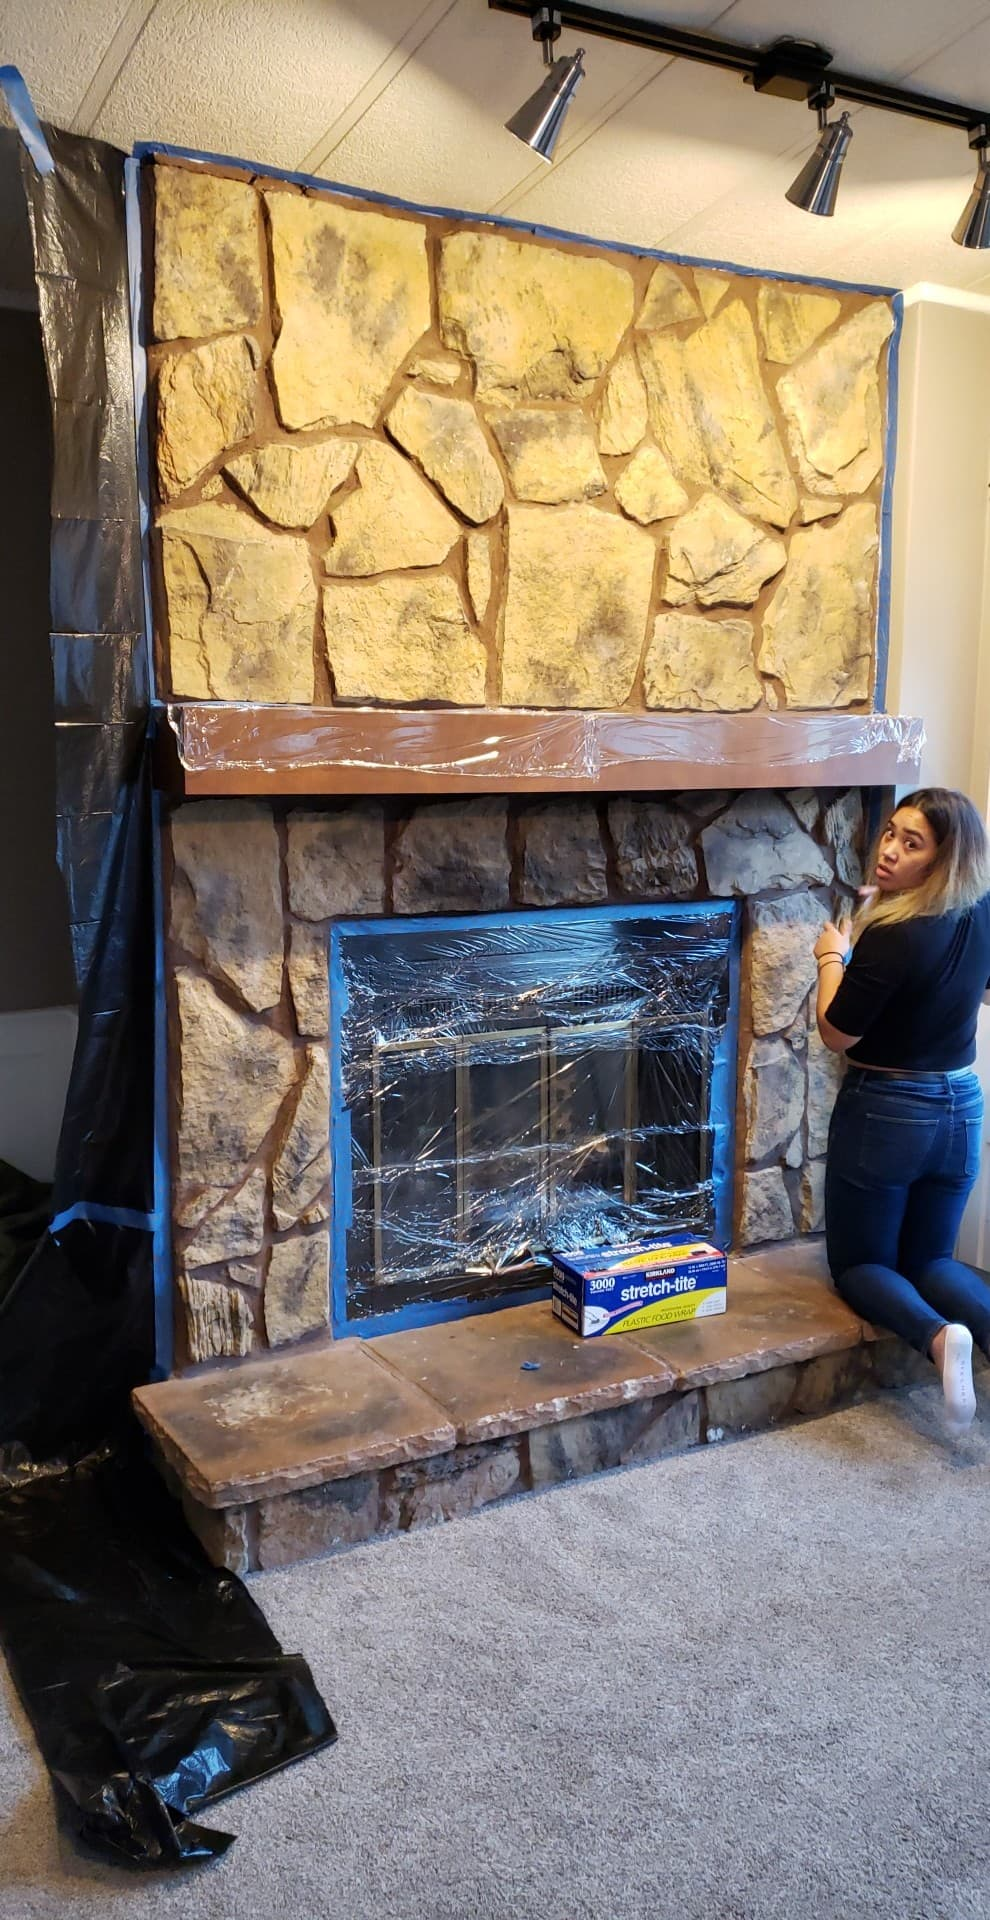 Before: https://www.kristancbarril.com/blog-1/resources/2018/10/27/diy-white-washed-fireplace